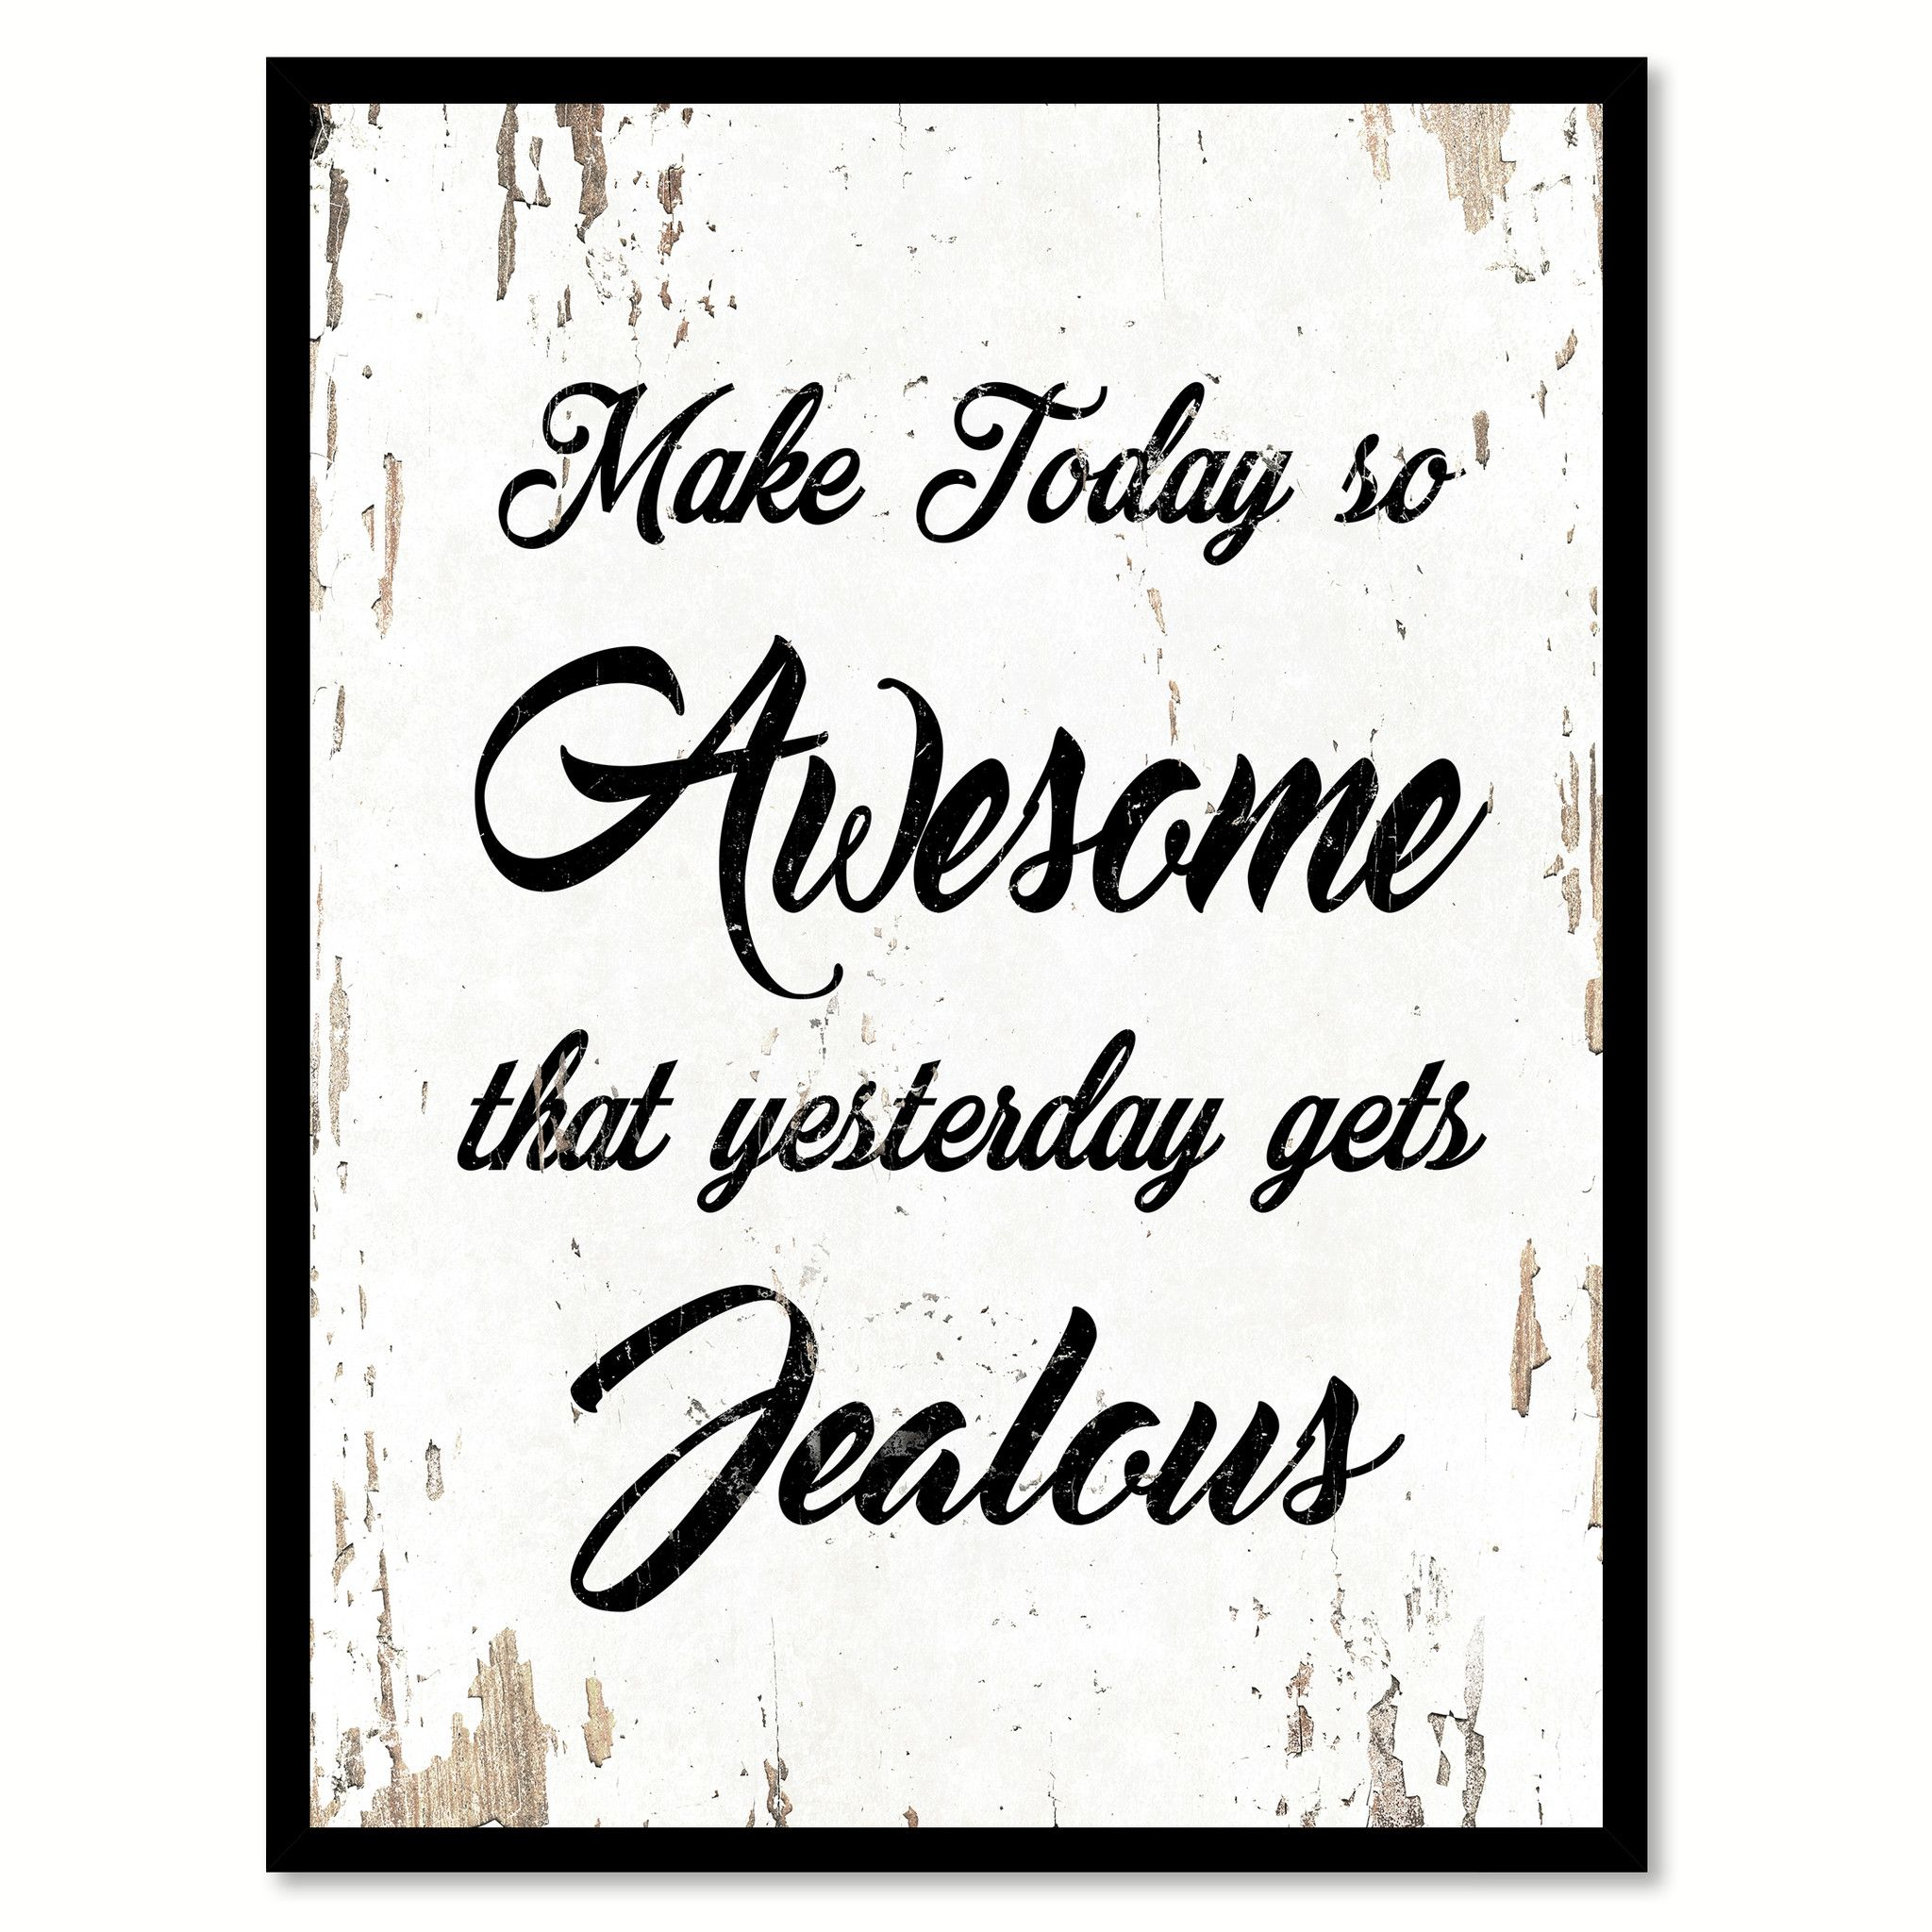 Make Today So Awesome Quote Saying Home Decor Wall Art Gift Ideas 111810